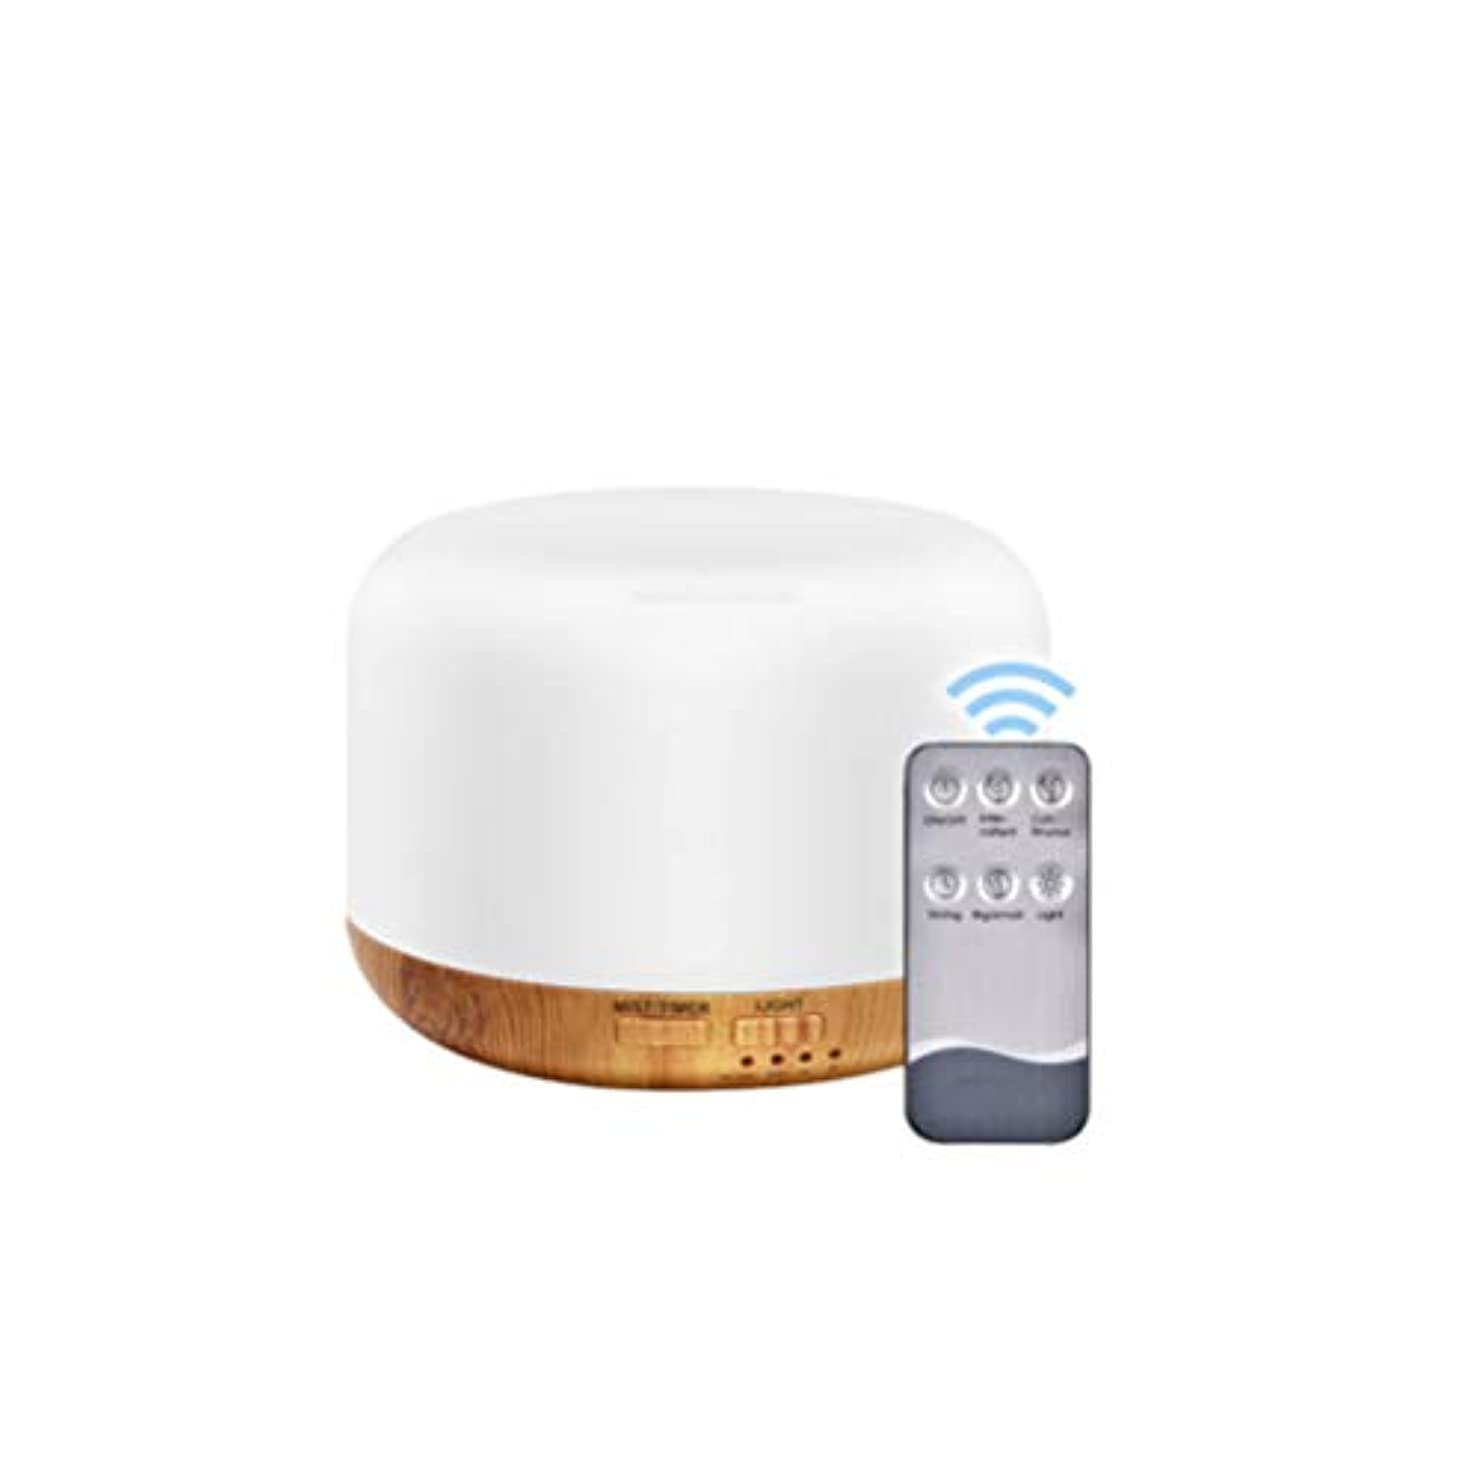 バスルームターミナルファシズムHealifty Essential Oil Diffuser Aroma Essential Oil Cool Mist Humidifier Remote Control Colorful Aromatherapy...